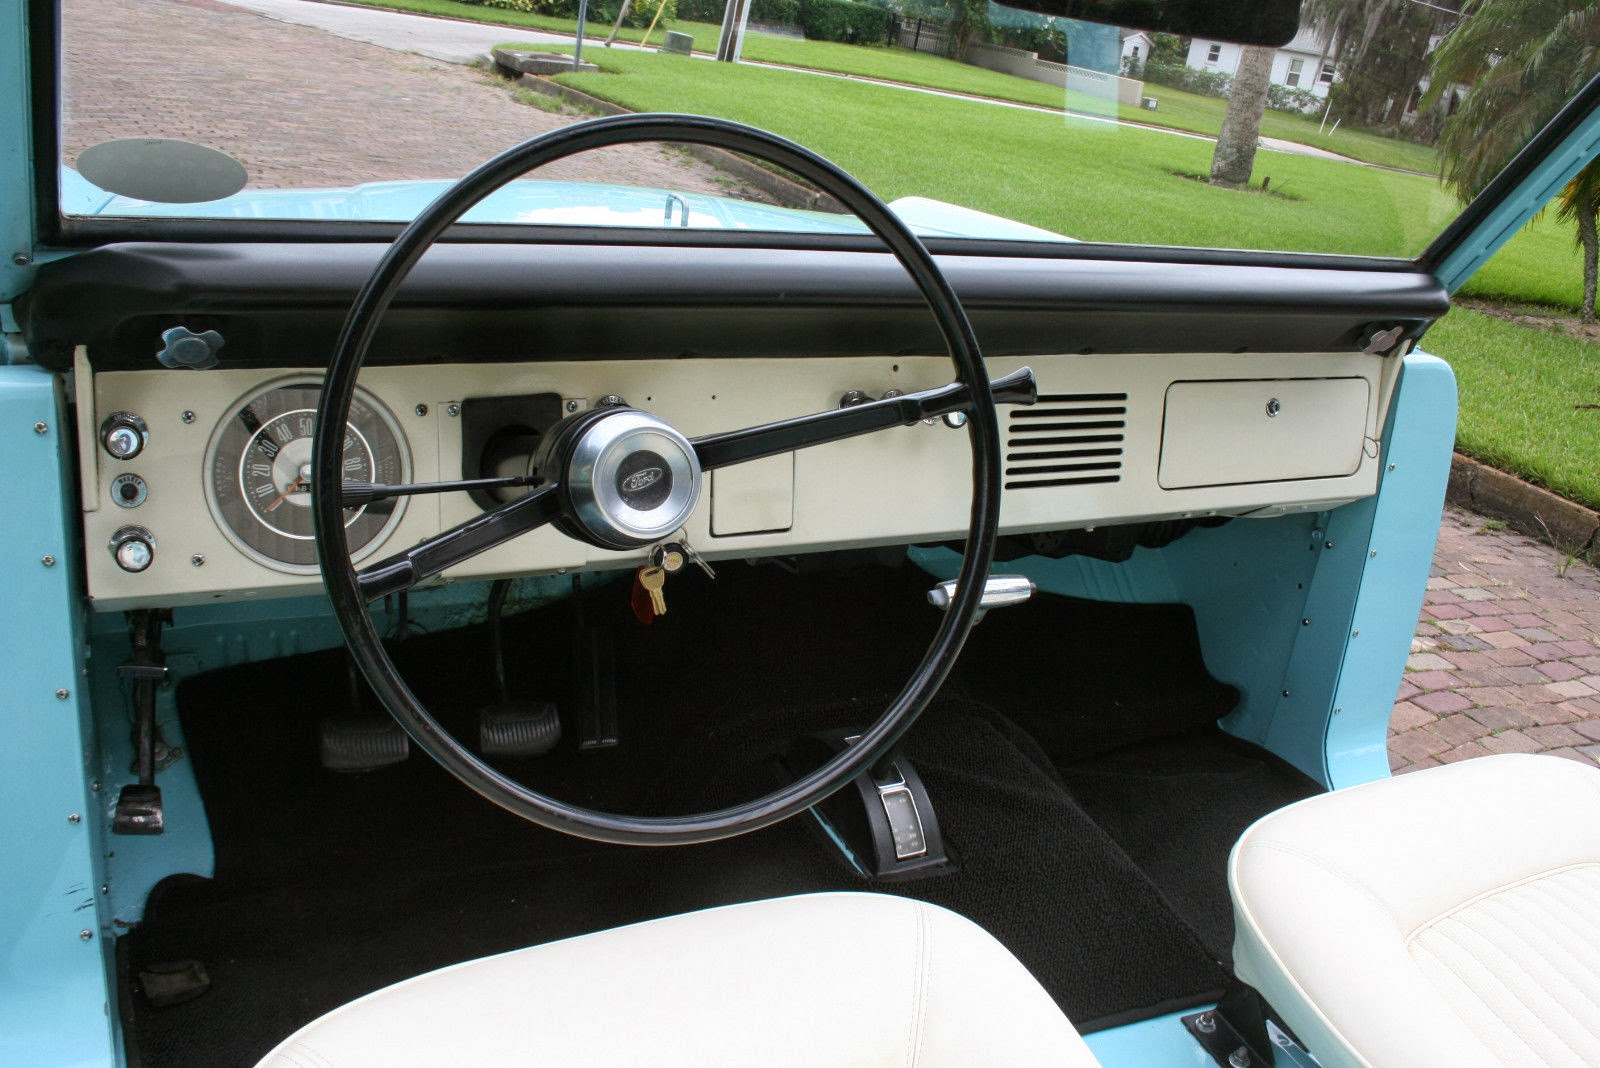 Ford Bronco The Original Rough Rider Phscollectorcarworld 1967 Wiring Diagram Early Cabins Were Spartanby 1970s A Few More Knobs Appeared And Some Carpeting But It Was Basic Truck